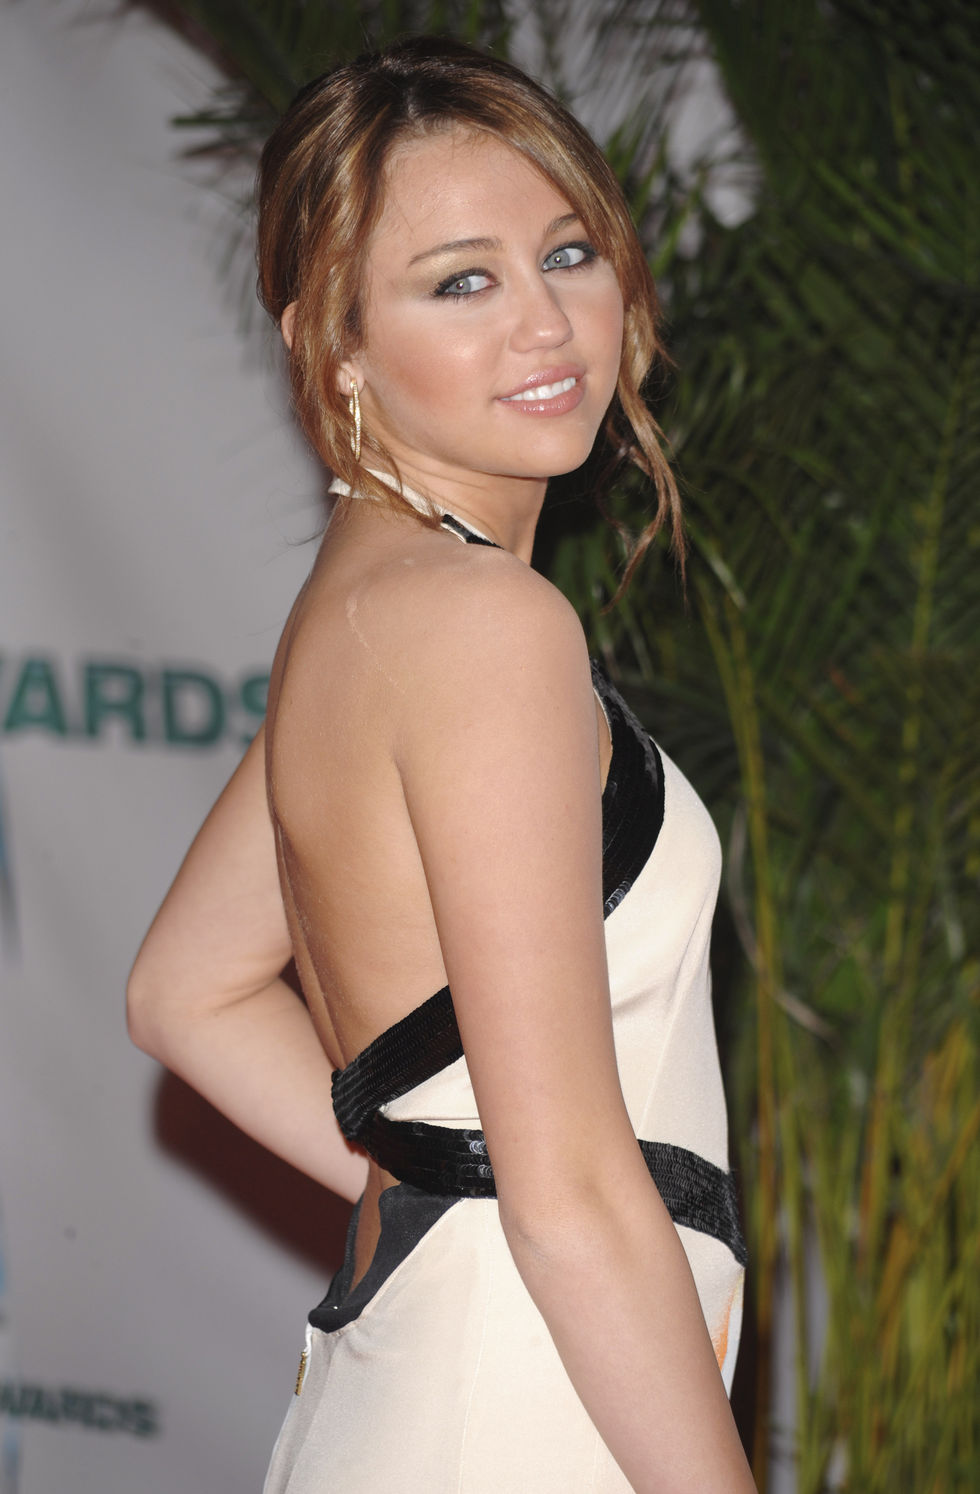 miley-cyrus-42nd-annual-cma-awards-in-nashville-01